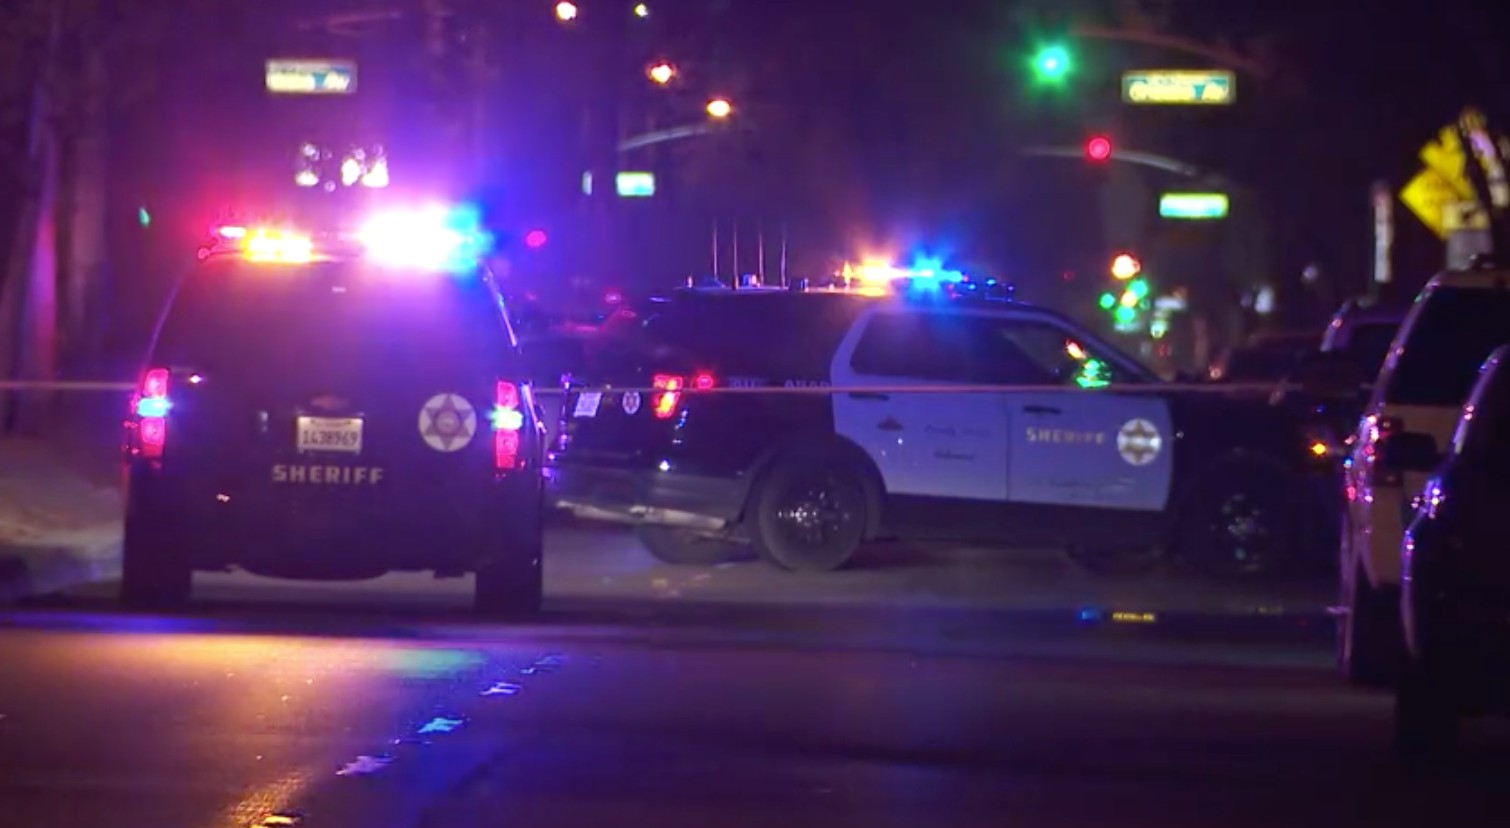 Sheriff's homicide detectives were investigating the fatal shooting of a 19-year-old man in Paramount on July 20, 2021. (KTLA)